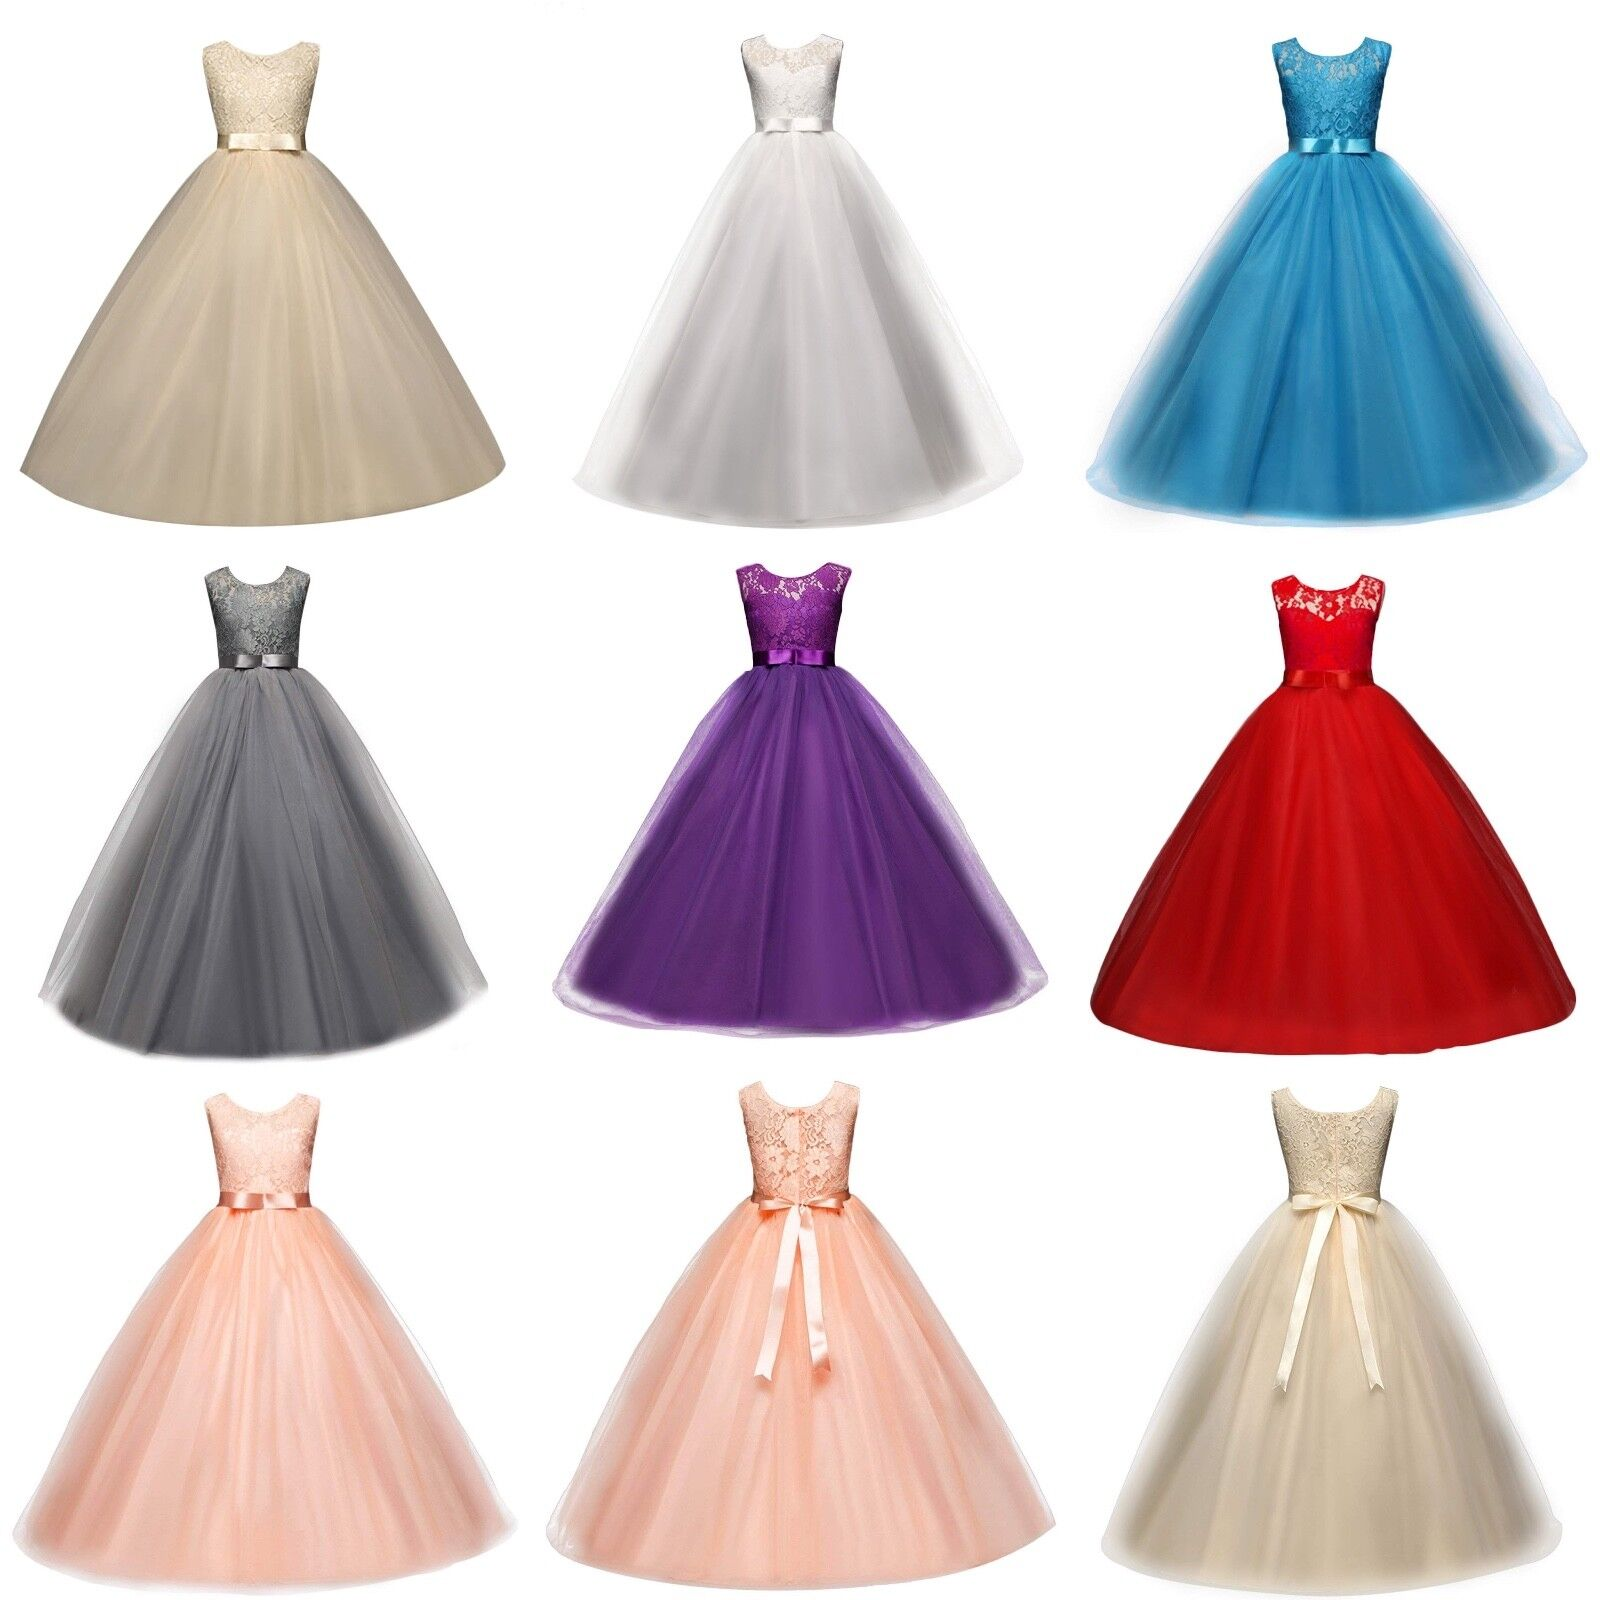 Girls Ball Gown Wedding Princess Bridesmaid Party Prom Birthday Dresses for Kids